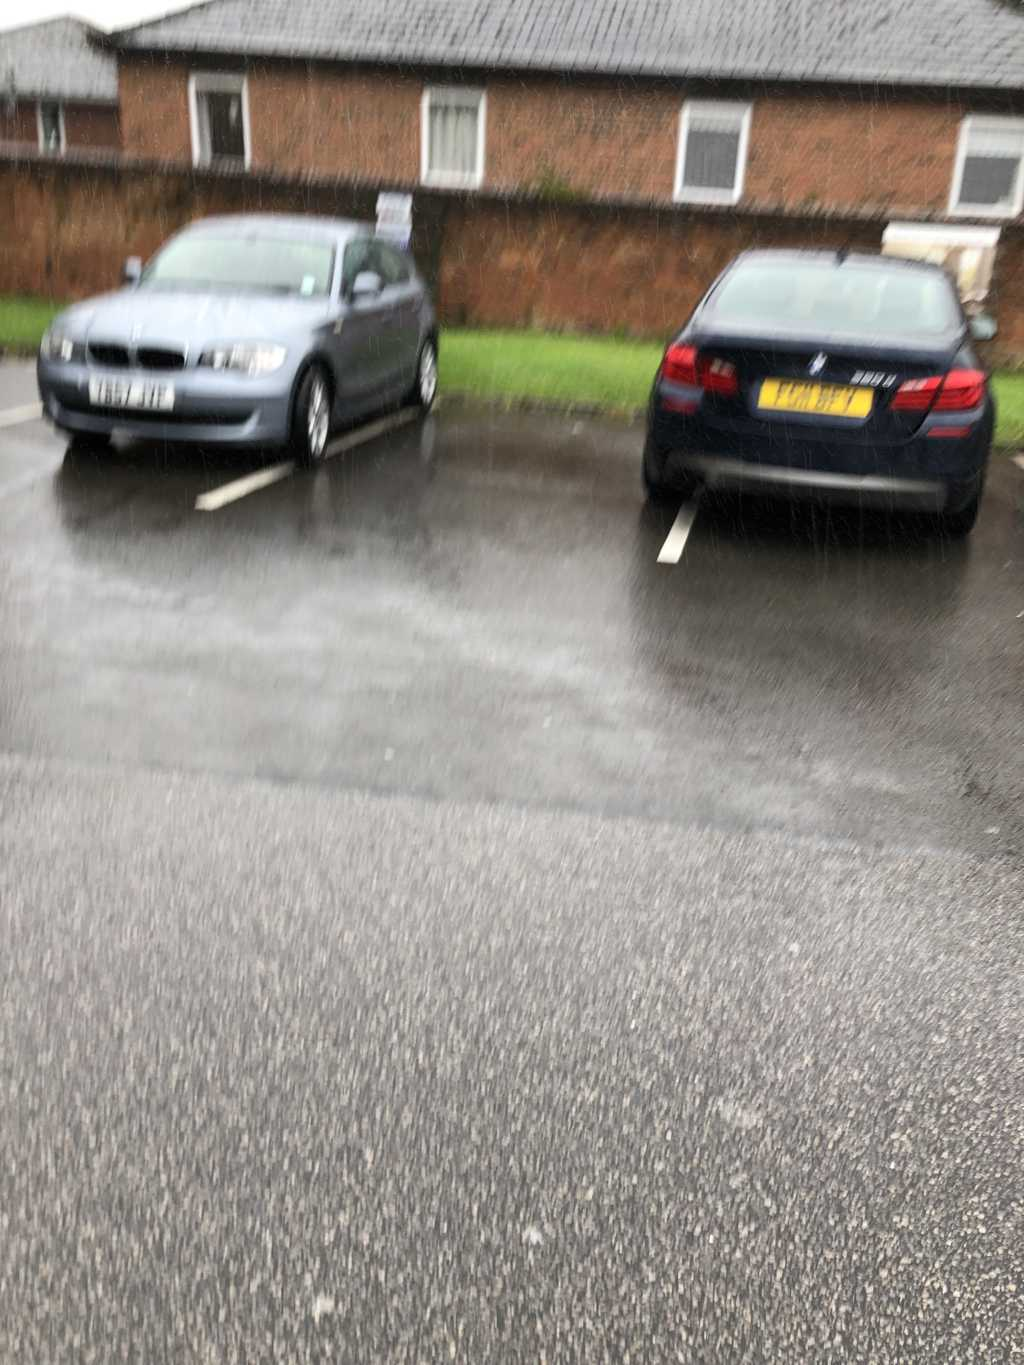 REG NOT ADDED is an Inconsiderate Parker